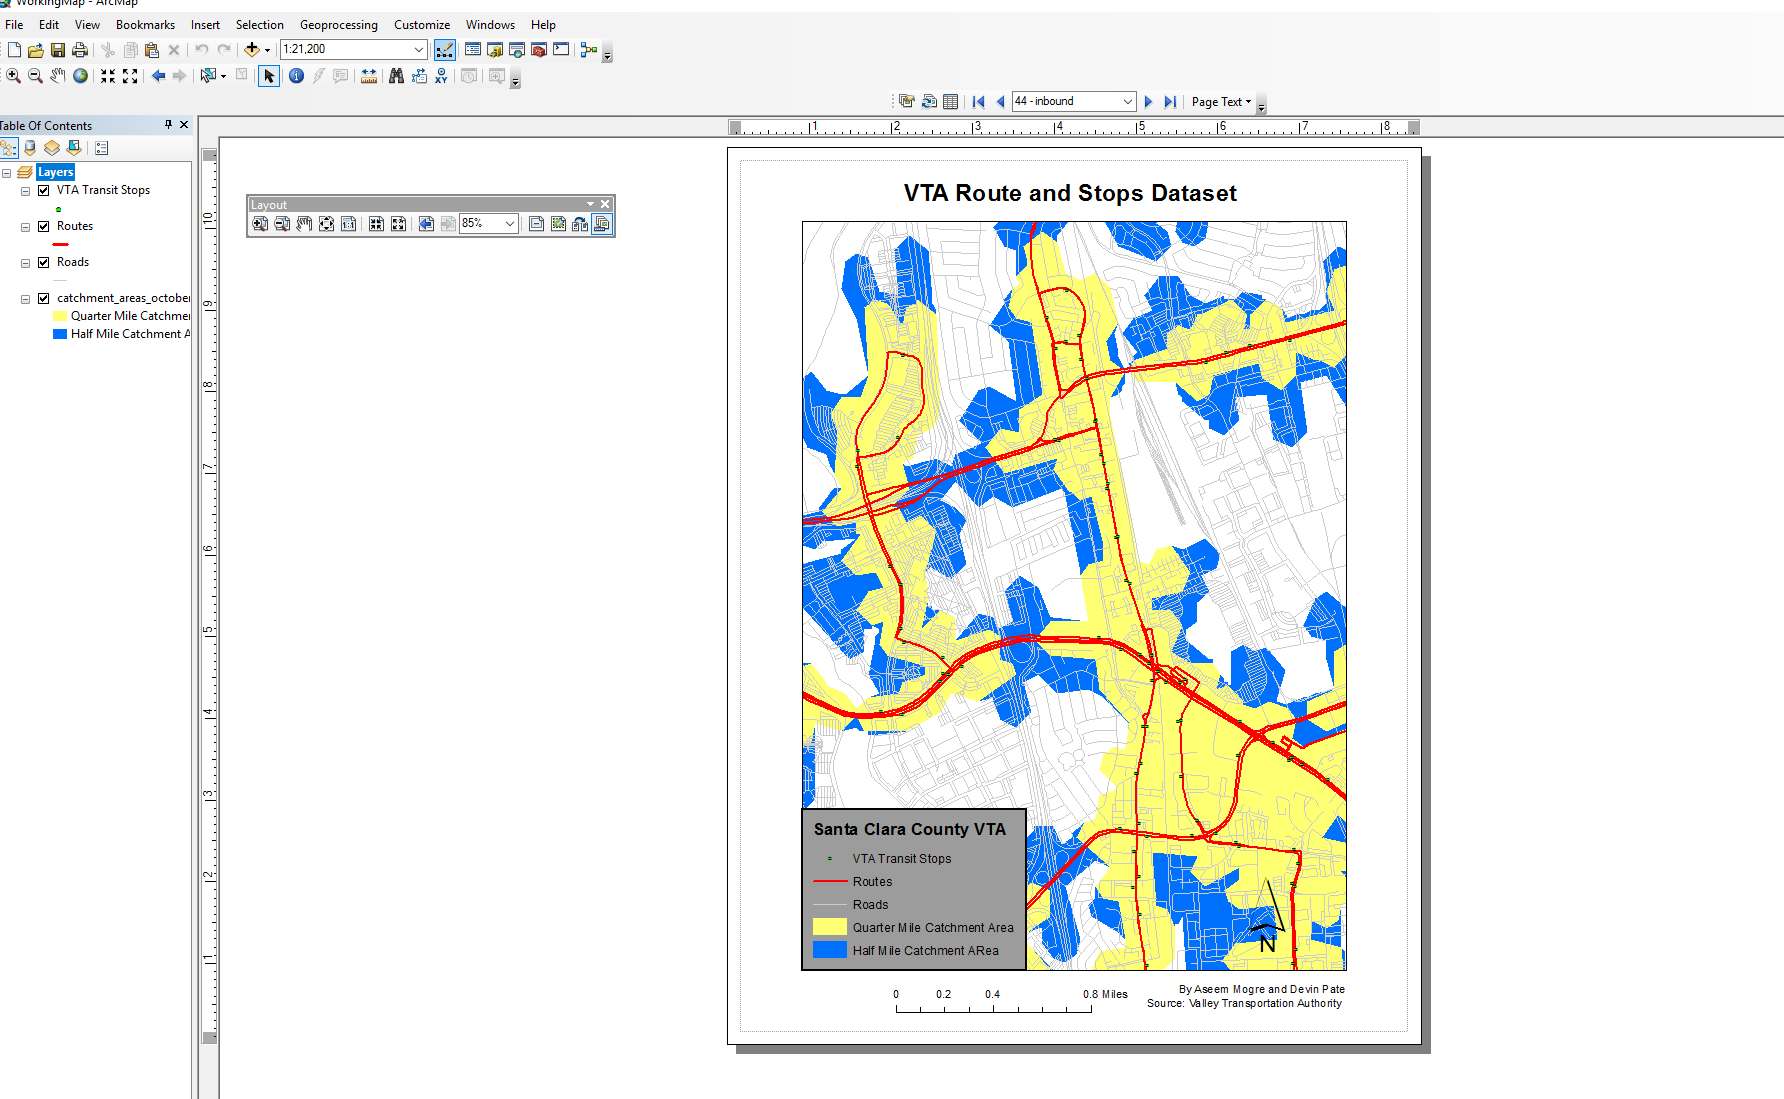 Figure 1. Data Driven Pages overall toolbar with map booklet in the making